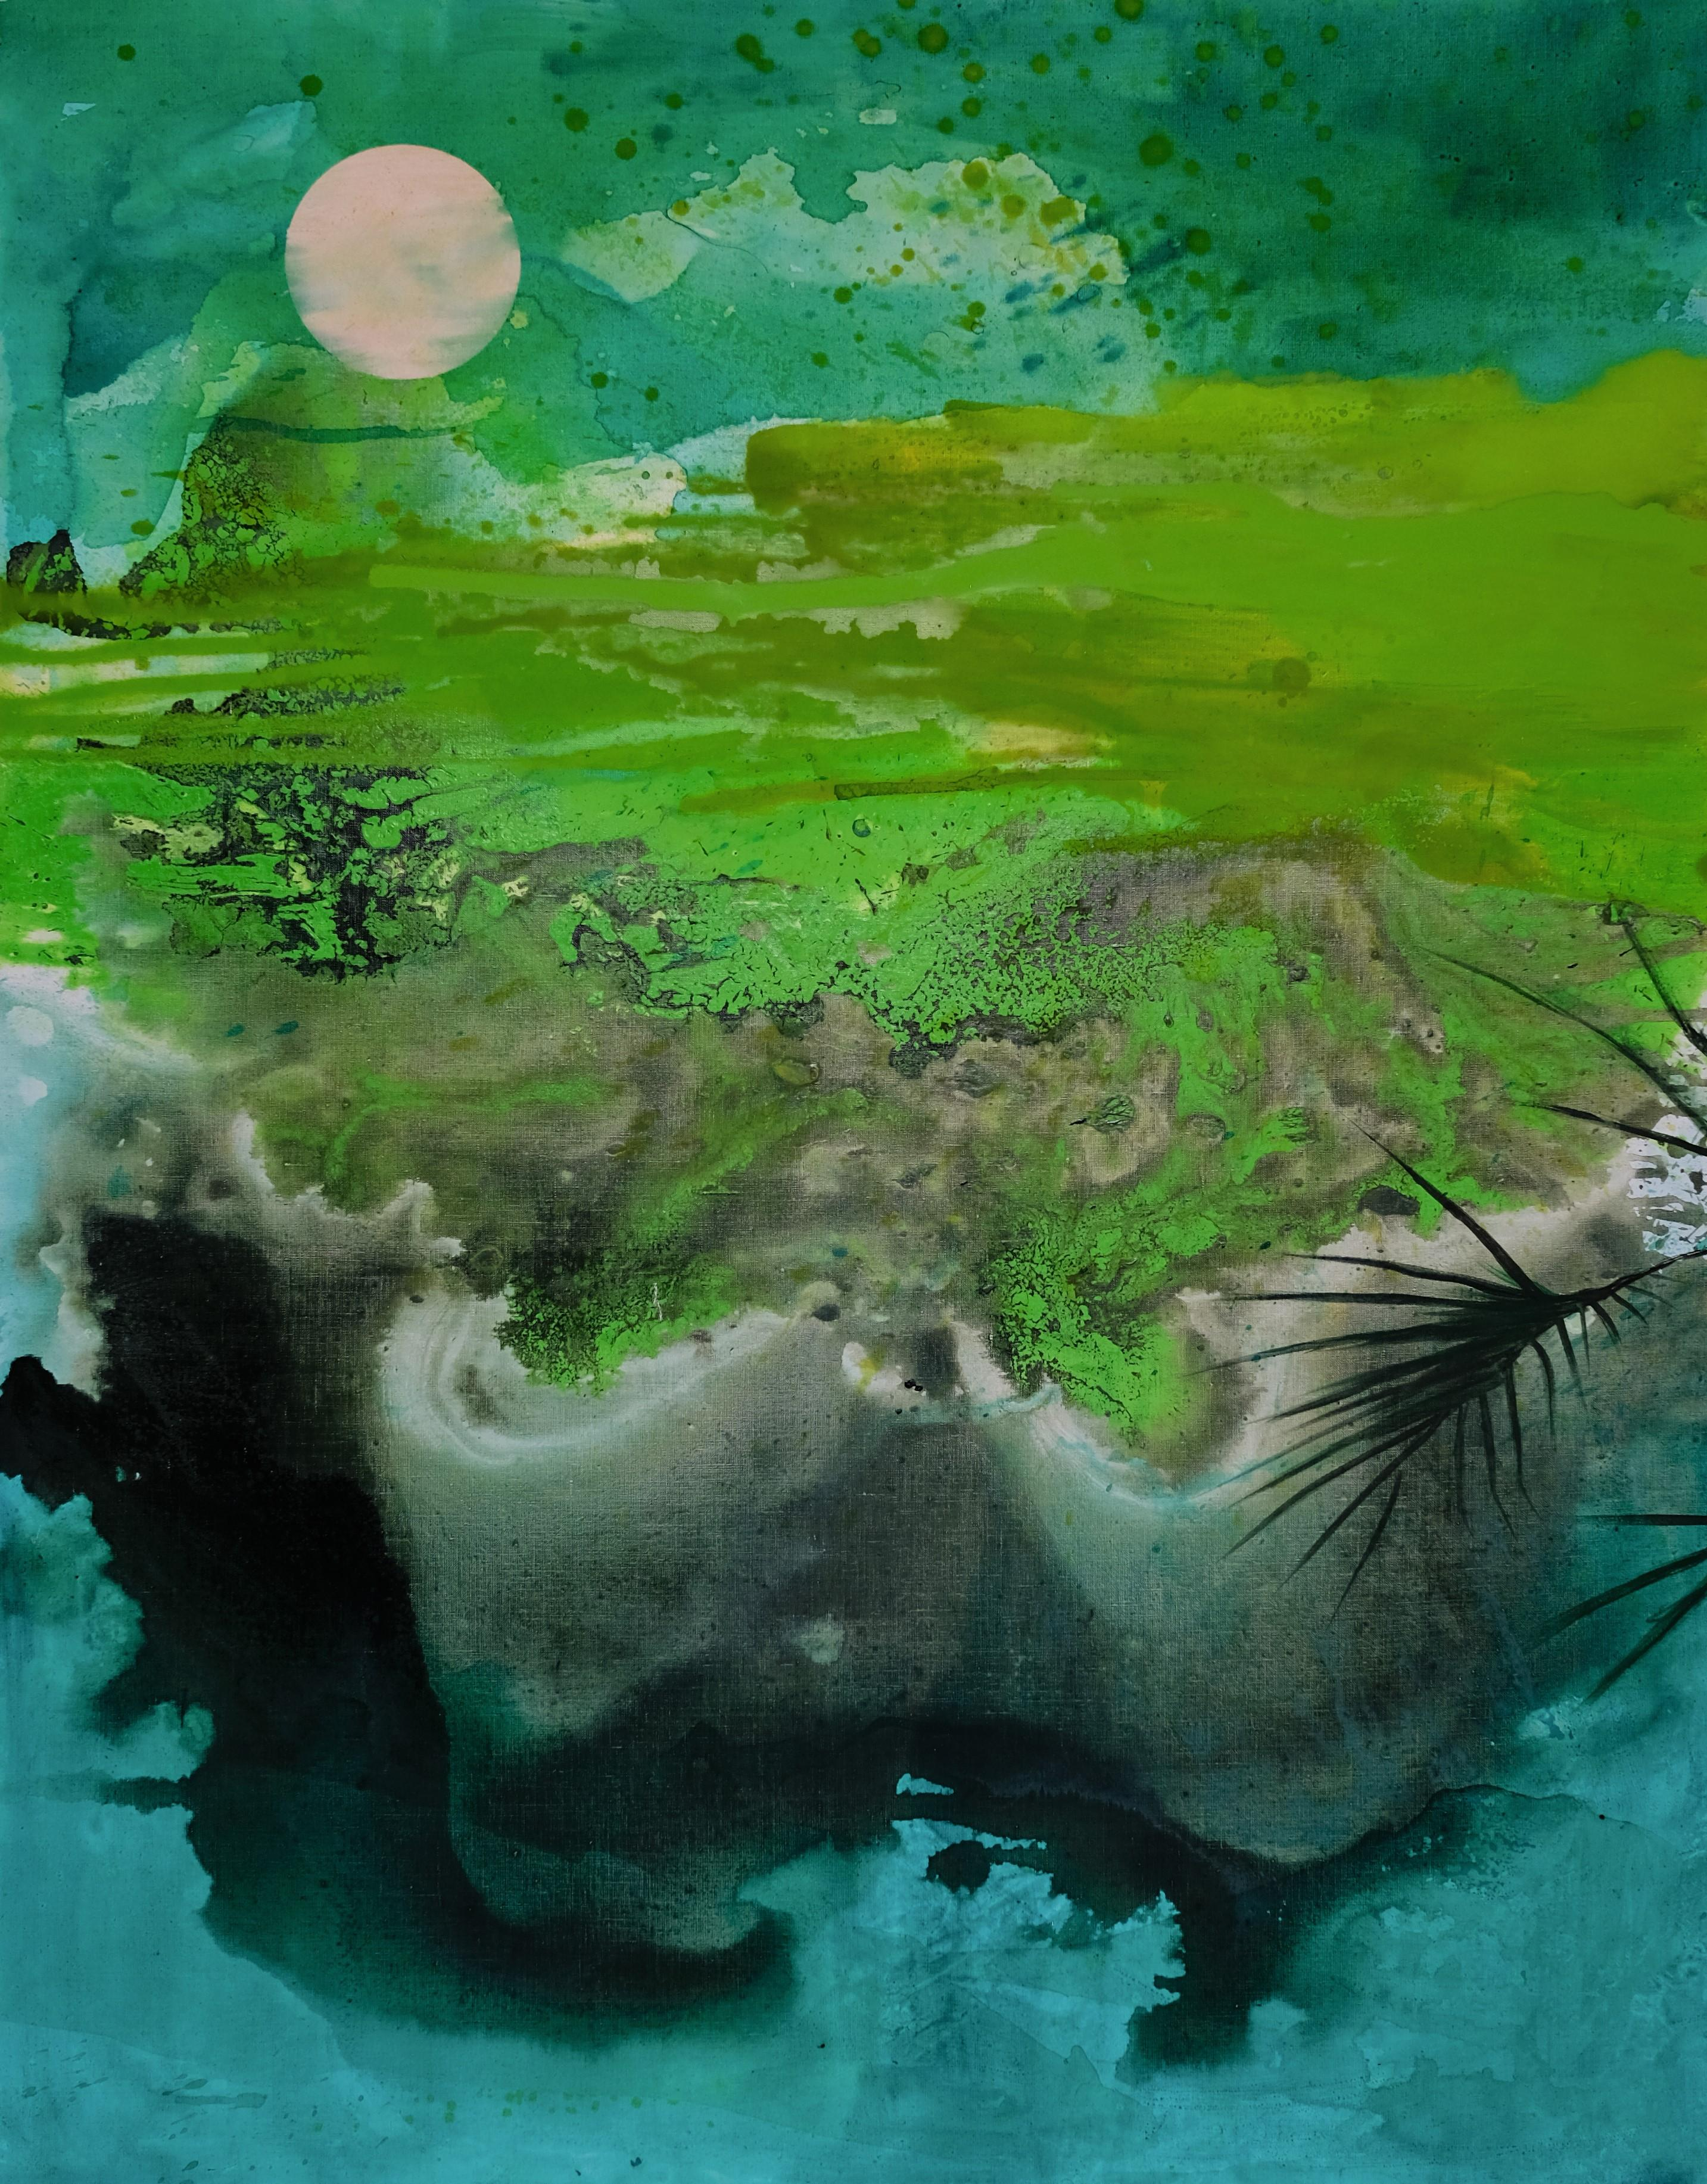 May - Modern Landscape Oil Painting, Lake View, Expression, Nature, Green Tones